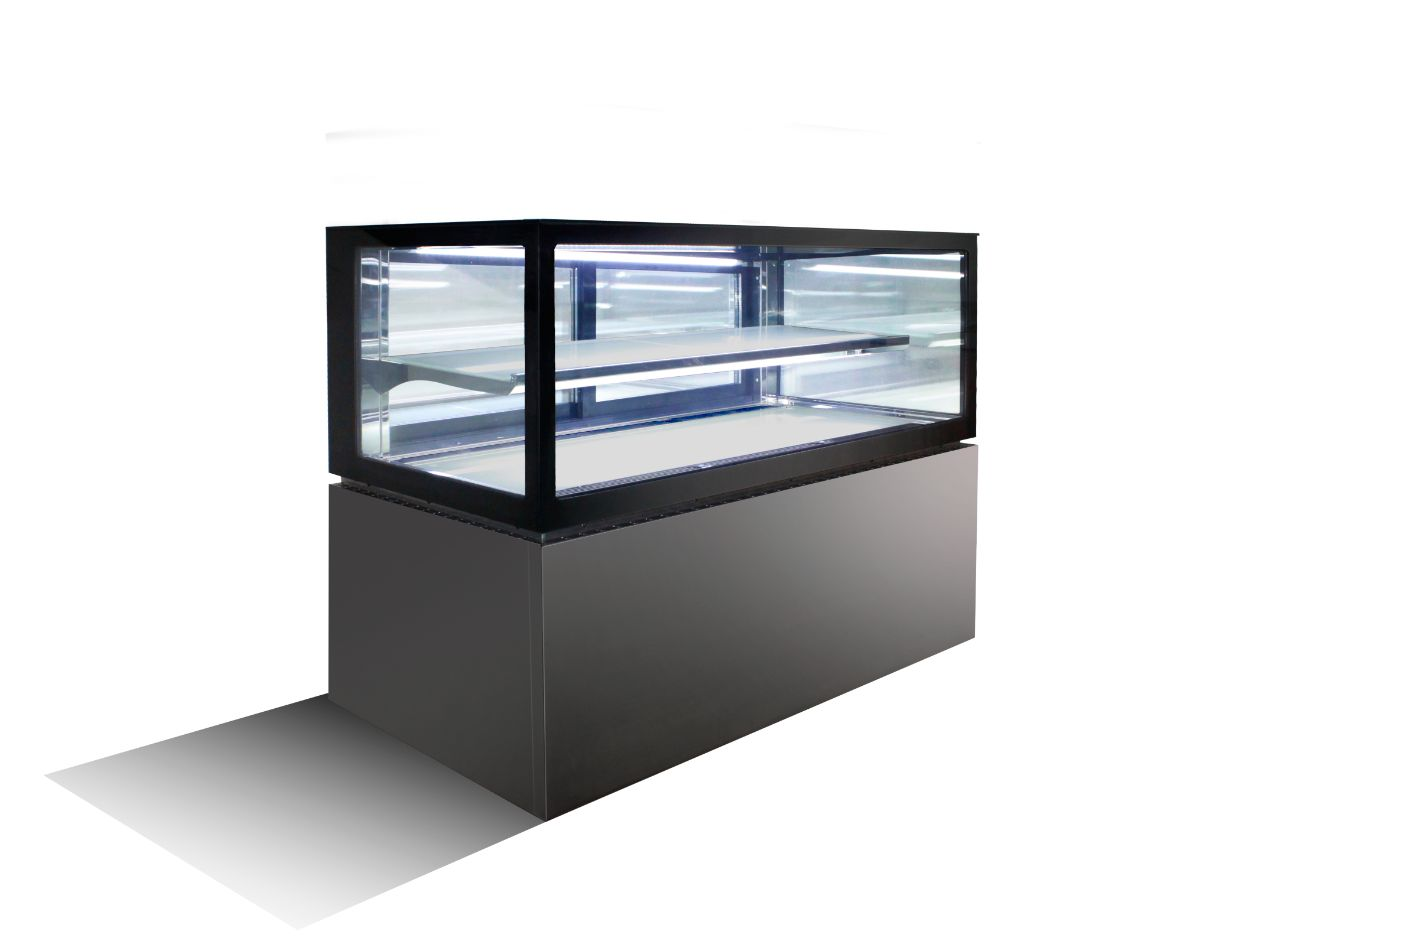 Anvil Aire NDSJ2740 Low Line Jewellery Display 2 Tier 1200mm